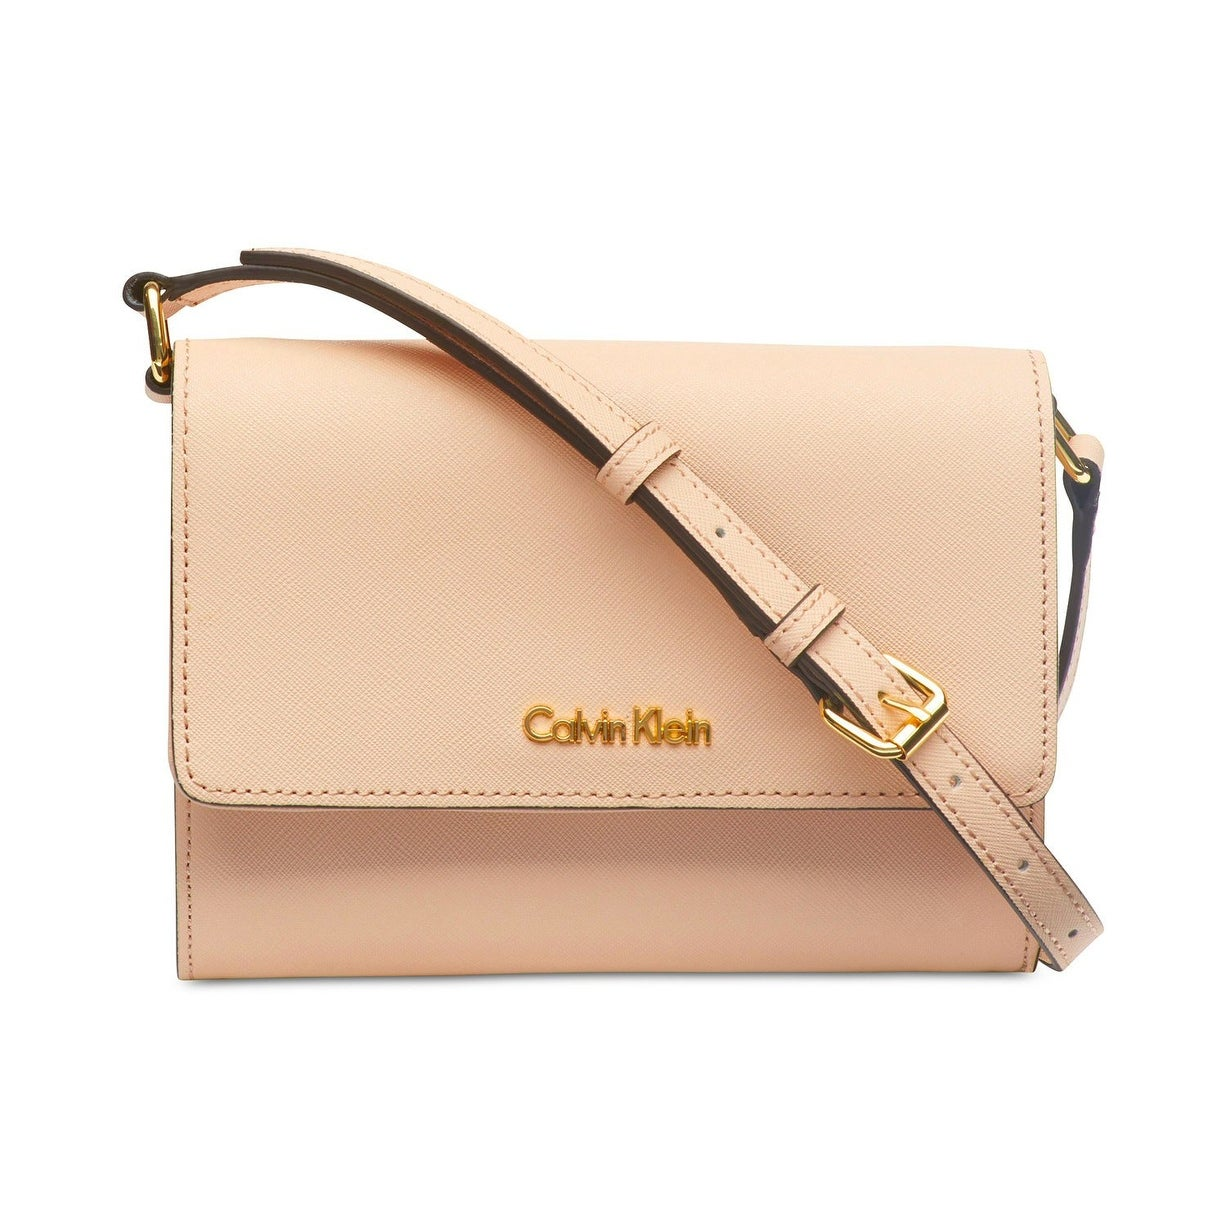 dcb8be847480 Shop Calvin Klein Josie Saffiano Leather Mini Crossbody Bag Desert Taupe -  Free Shipping Today - Overstock - 26428977